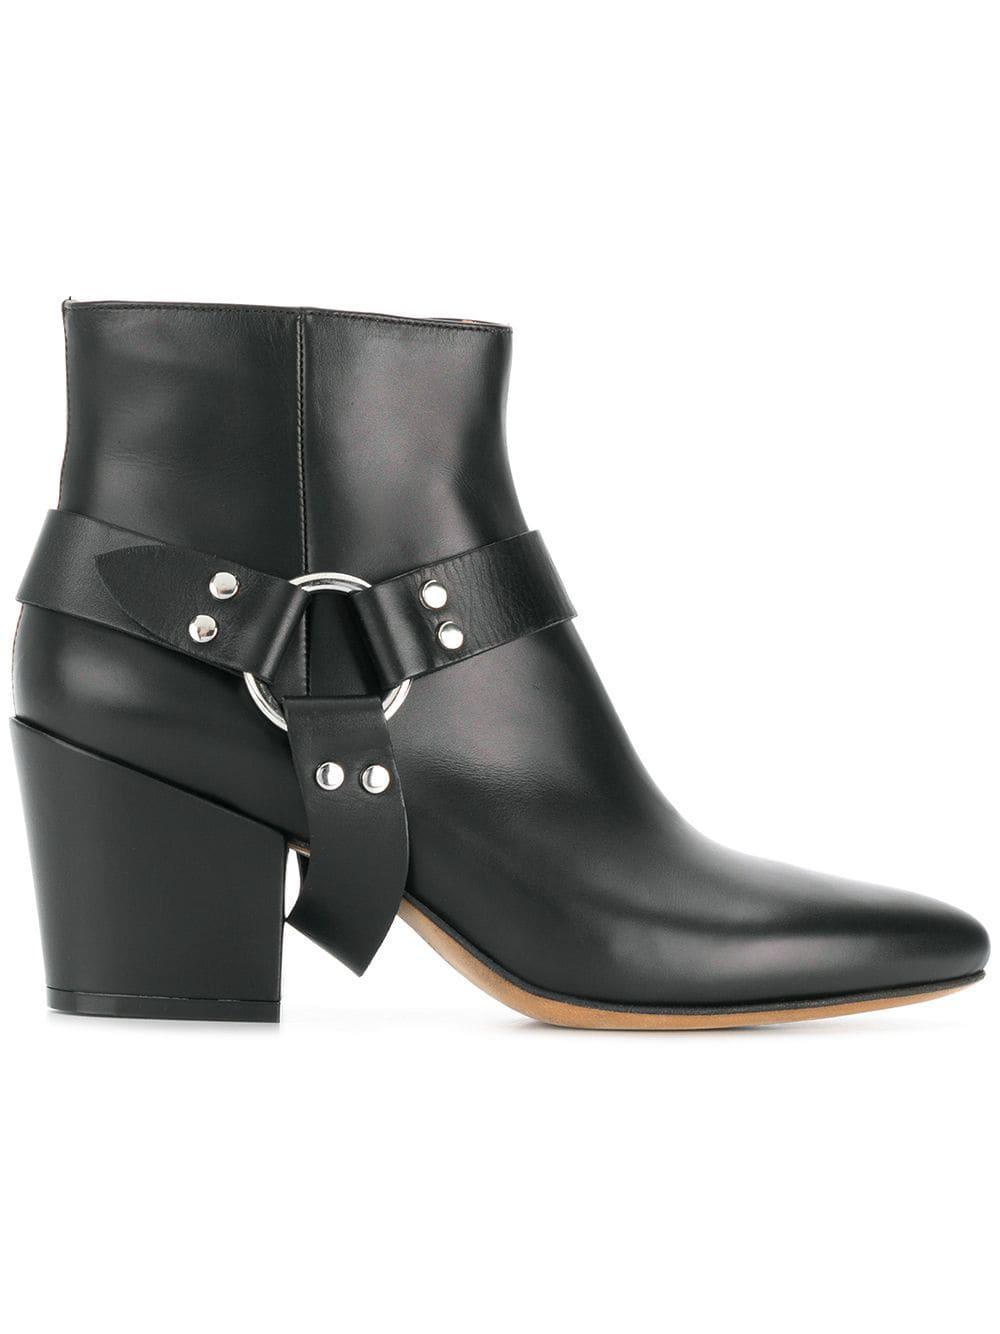 Buttero Leather Joseline Stirrup Boots in Black